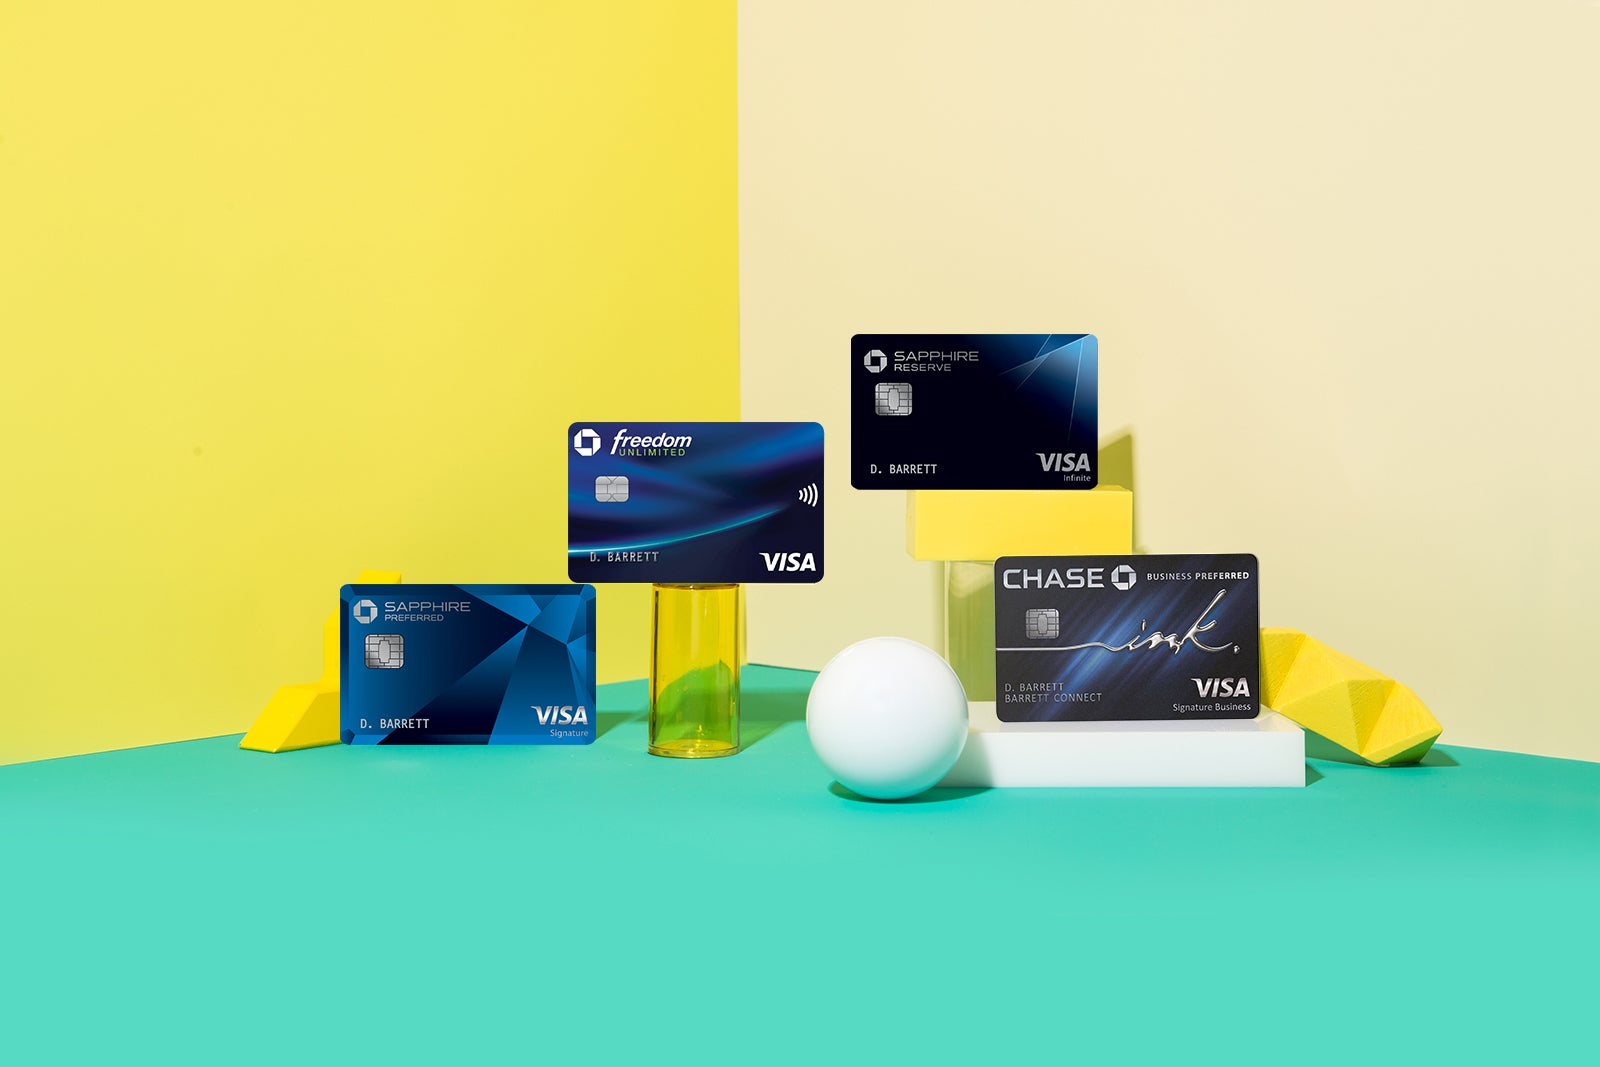 Best Chase credit cards of 2021 - The Points Guy